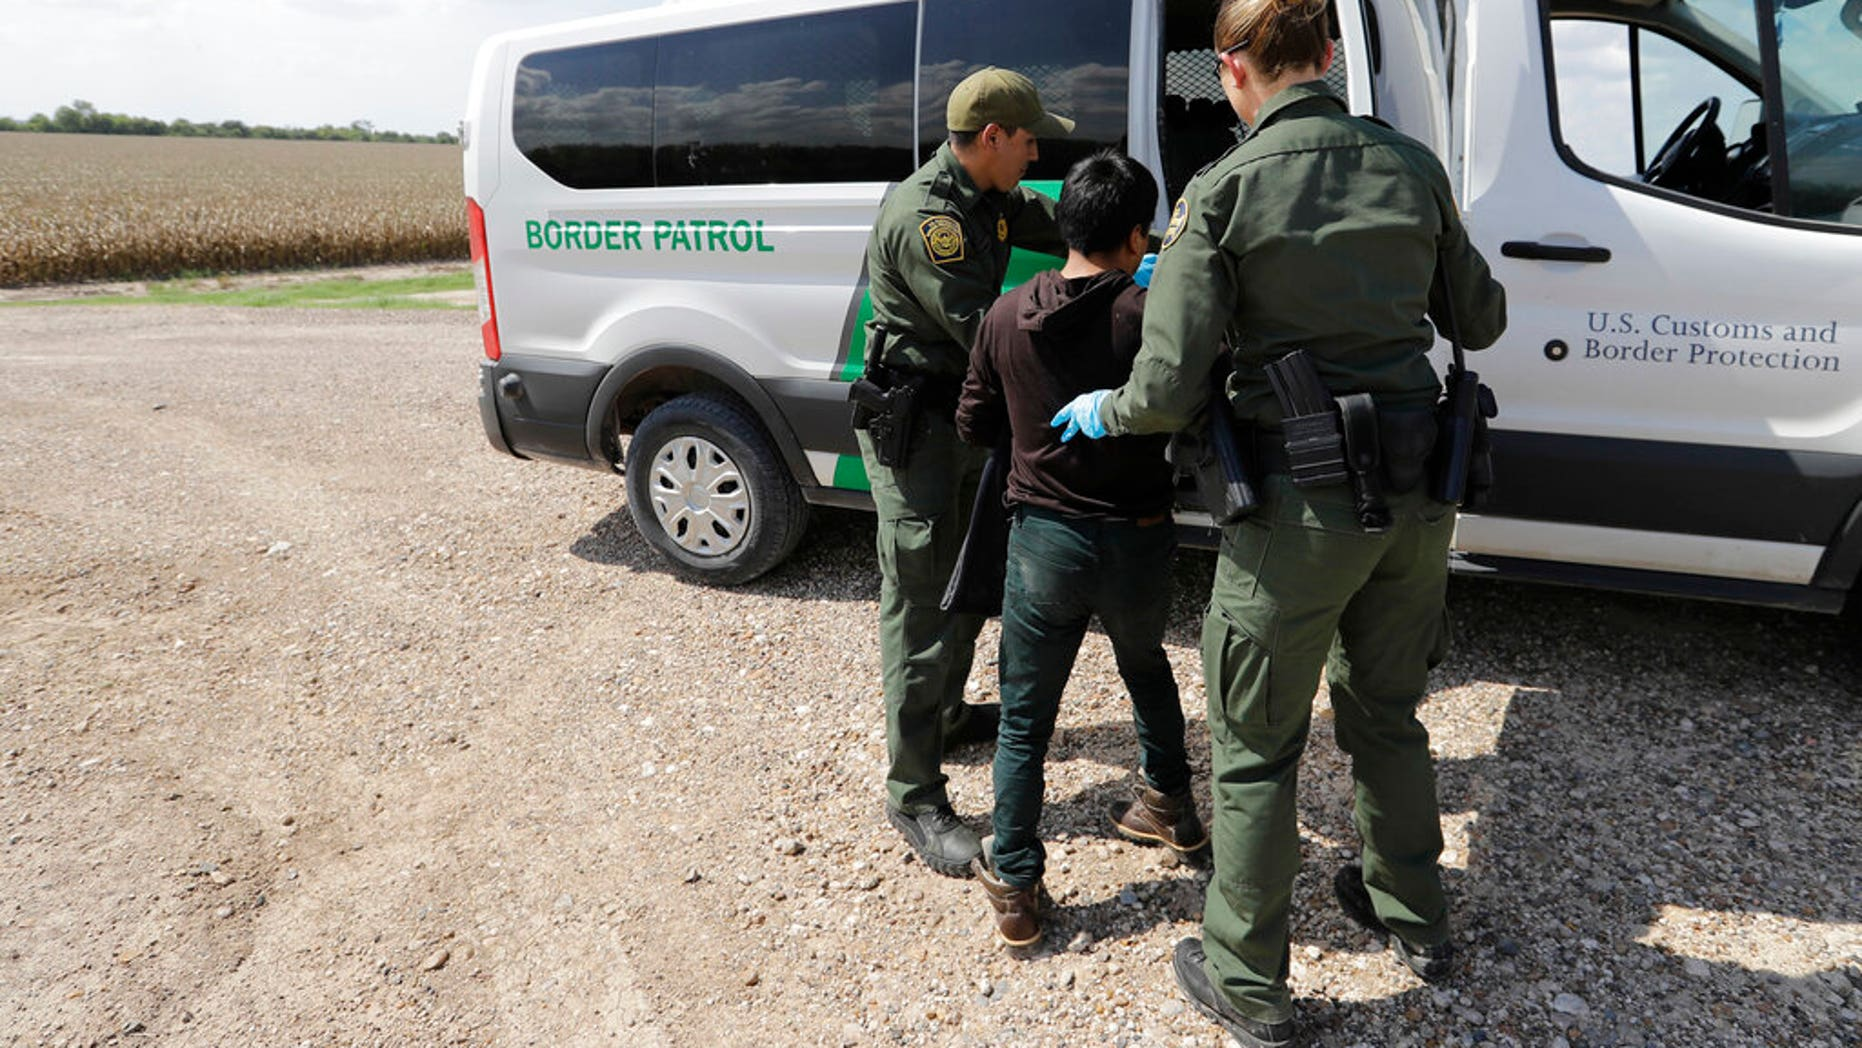 FILE - In this June 25, 2018 file photo, U.S. Border Patrol agents load a migrant from Guatemala into a van after he was caught trying to enter the United States illegally in Hidalgo, Texas. (AP Photo/David J. Phillip)